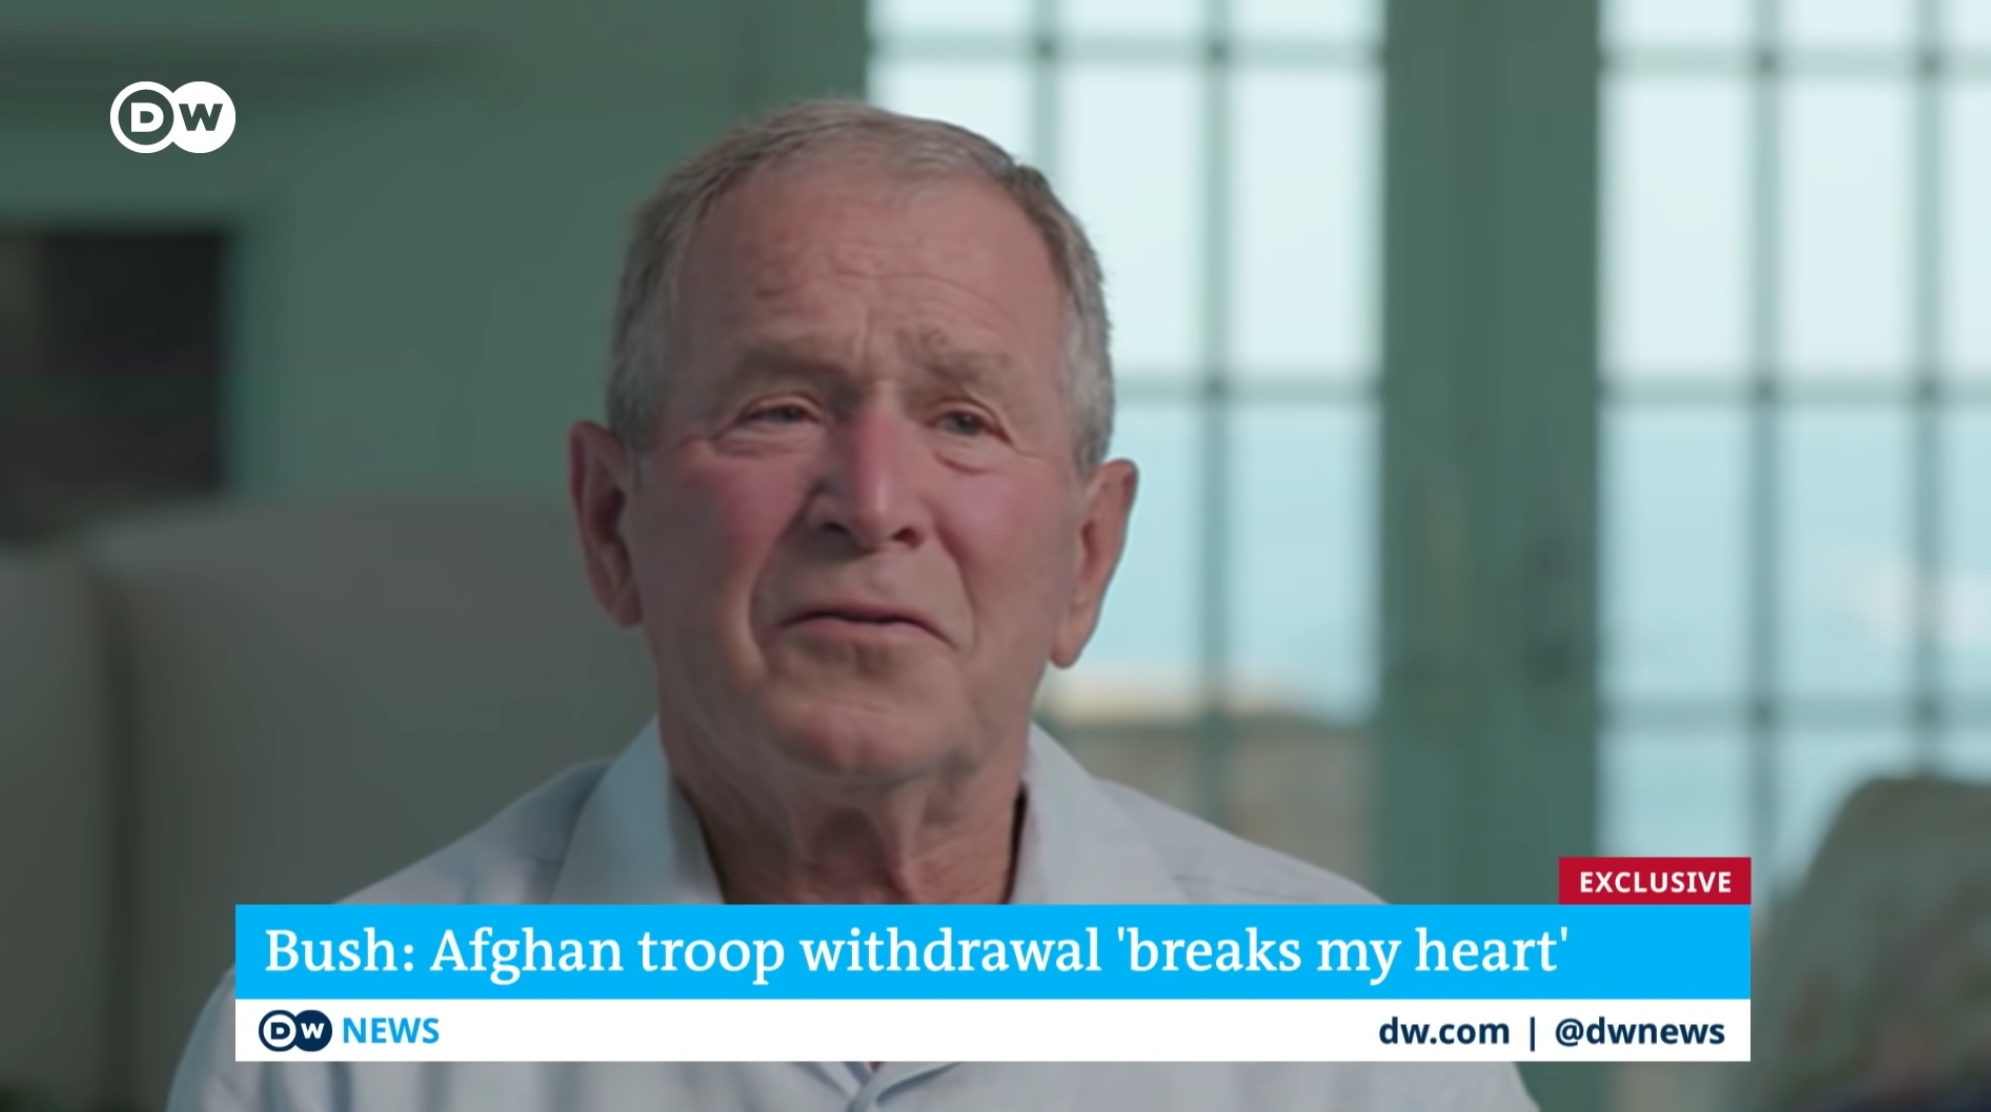 George W. Bush talks about the withdrawal of U.S. troops from Afghanistan